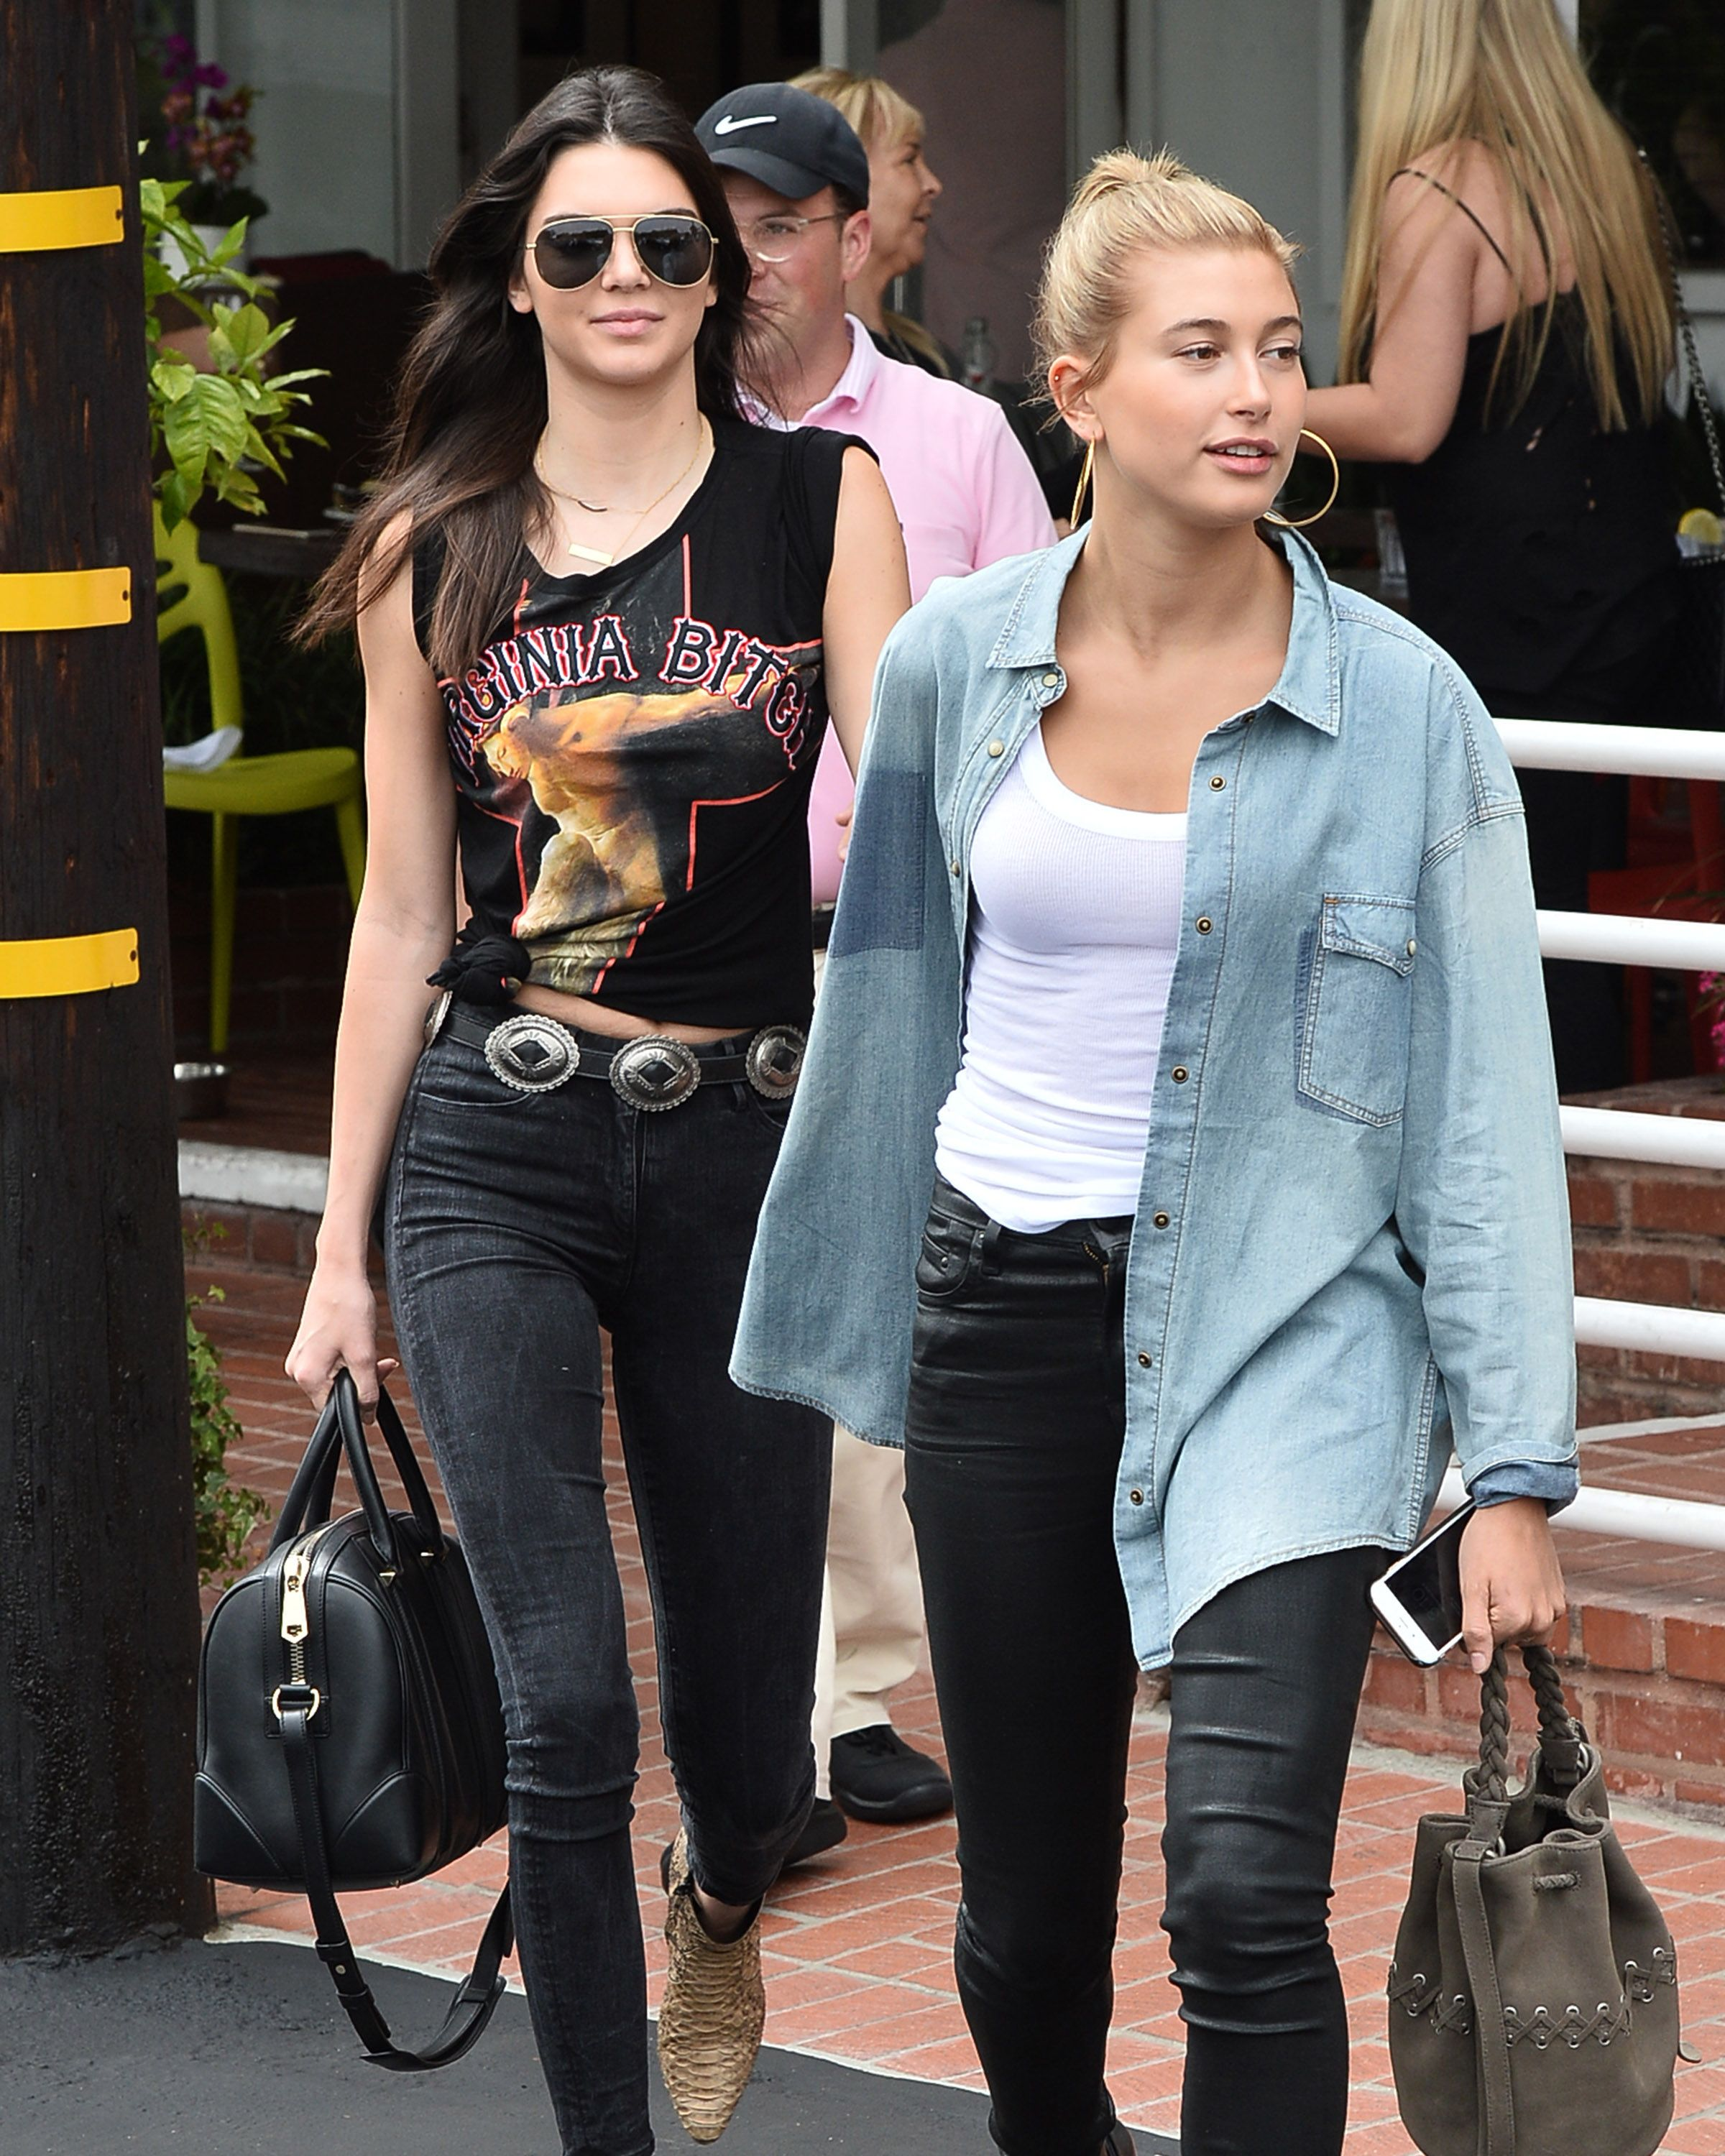 Kendall Jenner and Hailey Baldwin Get Matching Tattoos